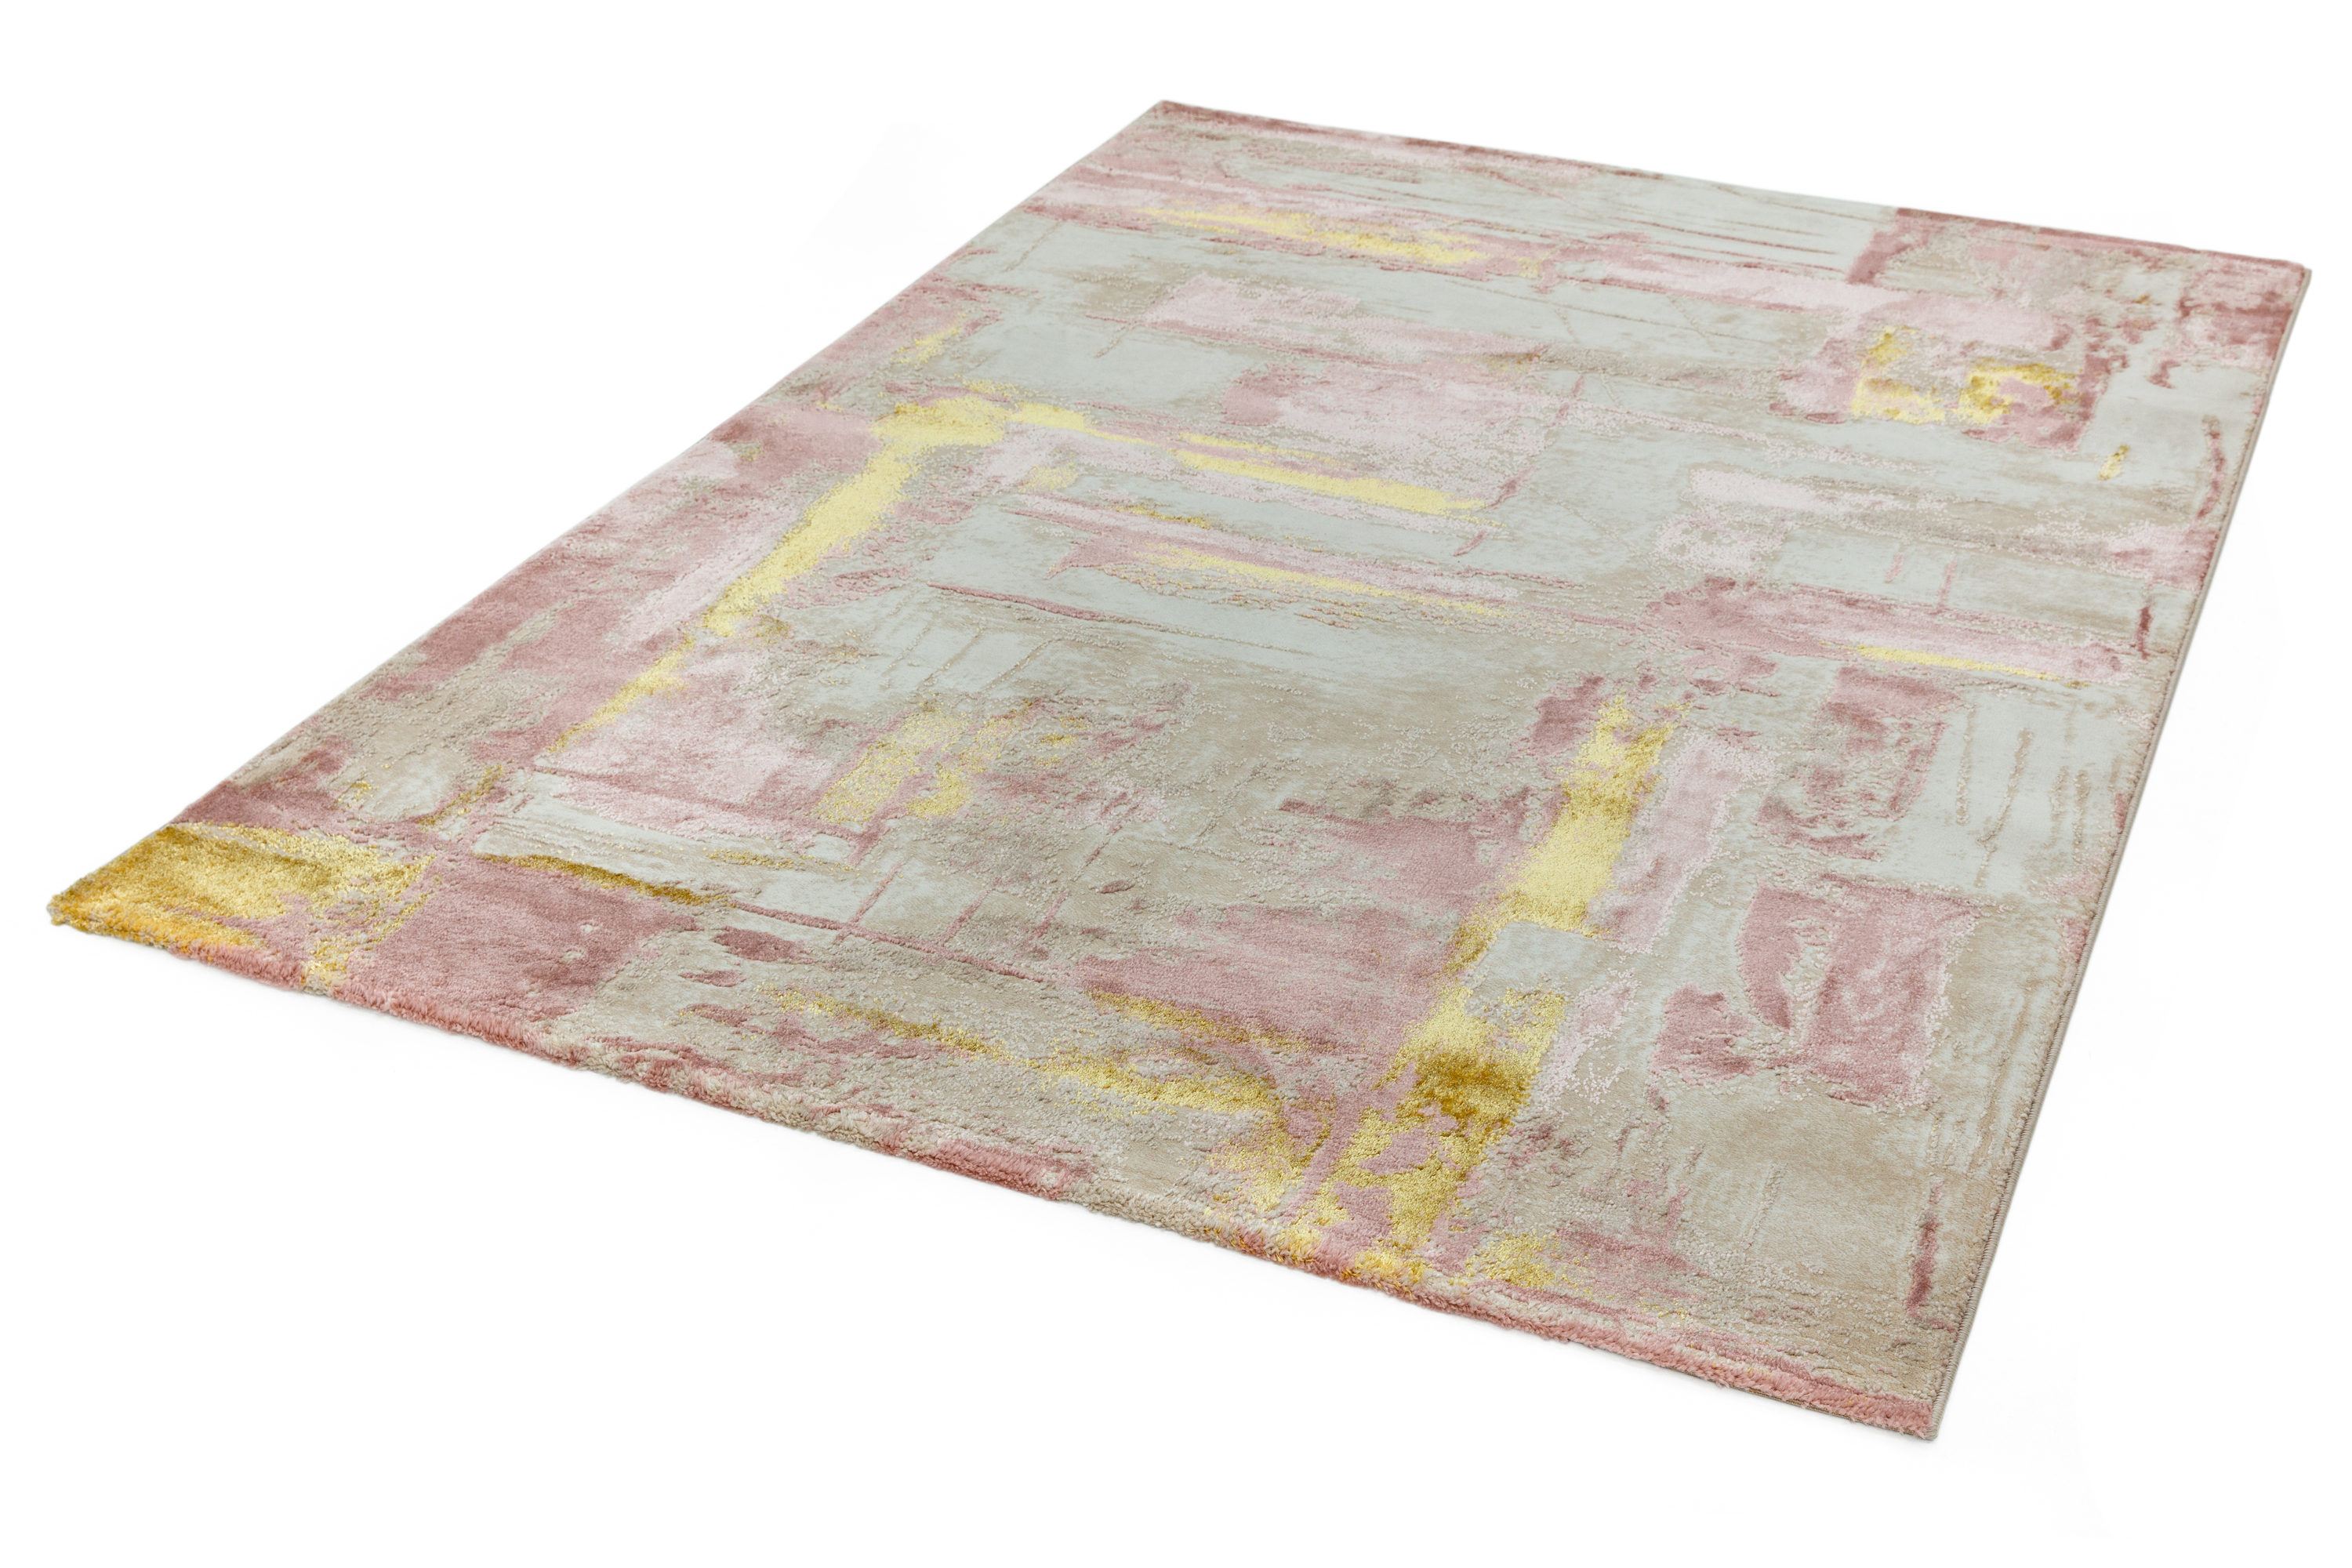 Orion OR01 Decor Pink Rug